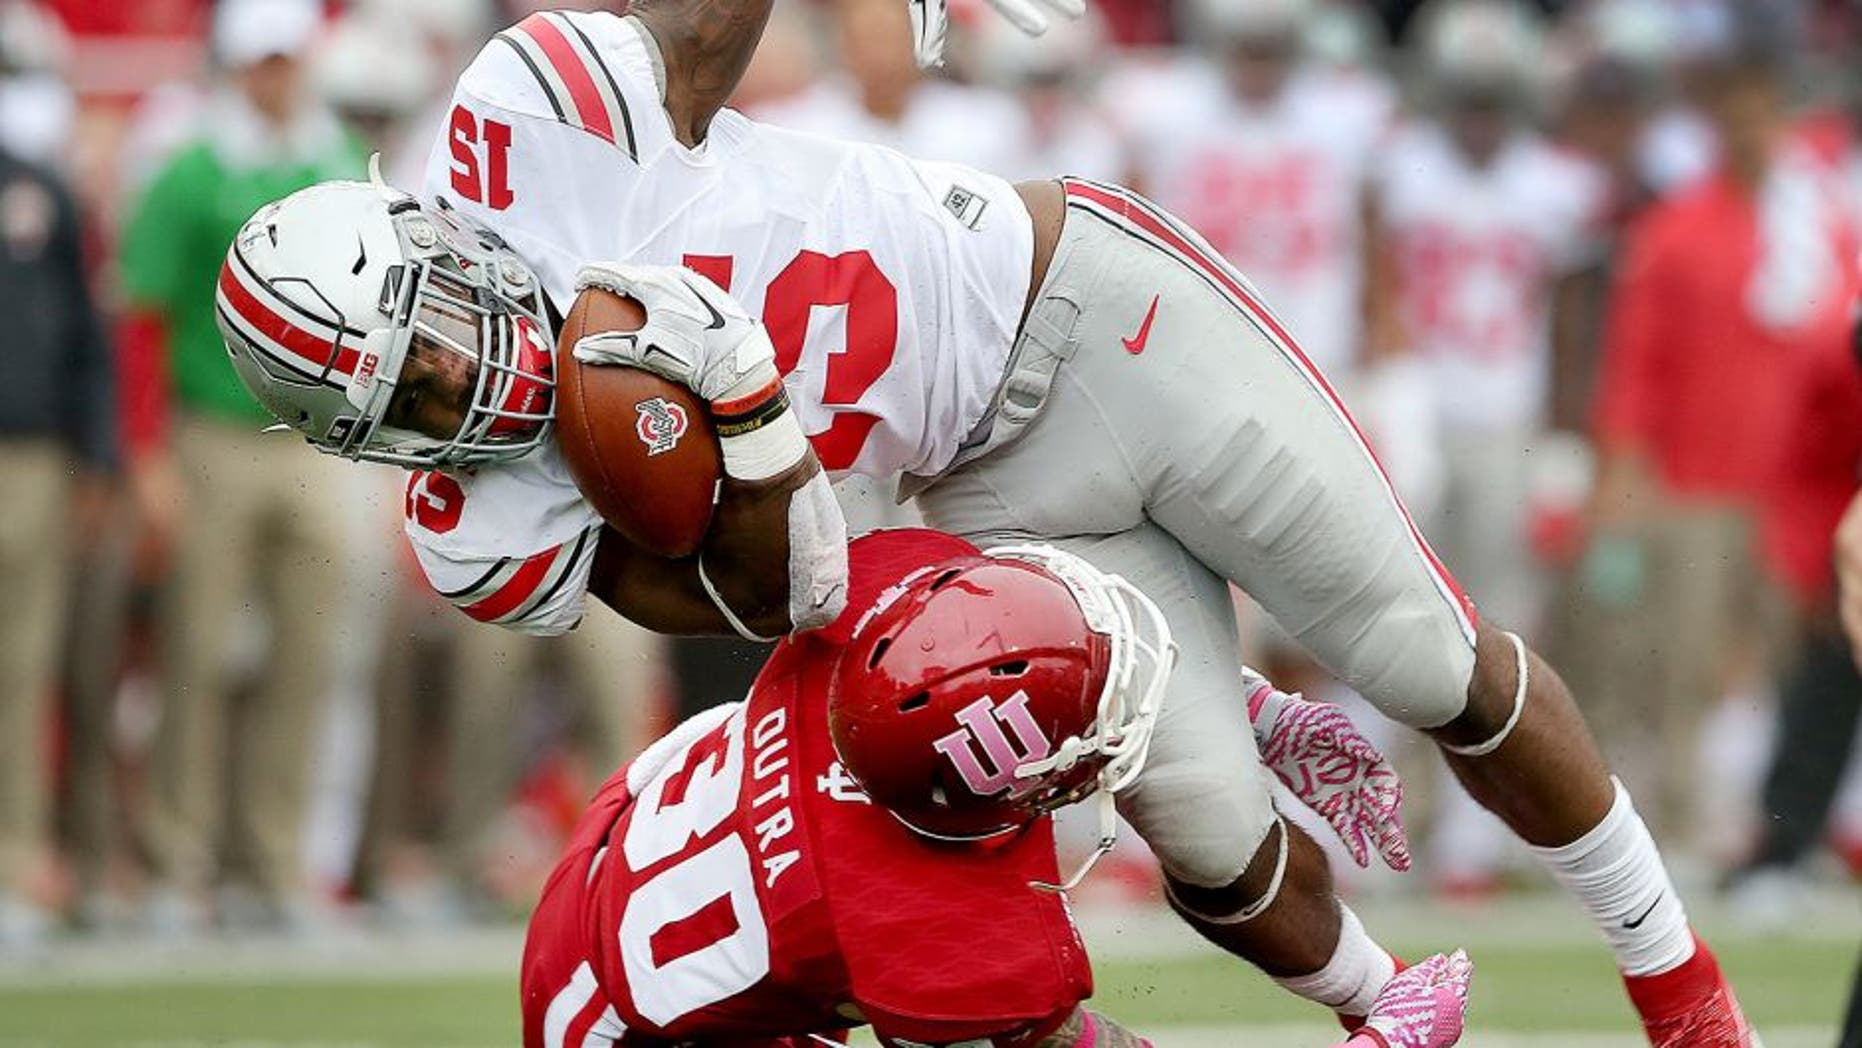 Oct 3, 2015; Bloomington, IN, USA; Ohio State Buckeyes running back Ezekiel Elliott (15) is stopped by Indiana Hoosiers defensive back Chase Dutra (30) in the first half of their game at Memorial Stadium. Mandatory Credit: Matt Kryger-USA TODAY Sports